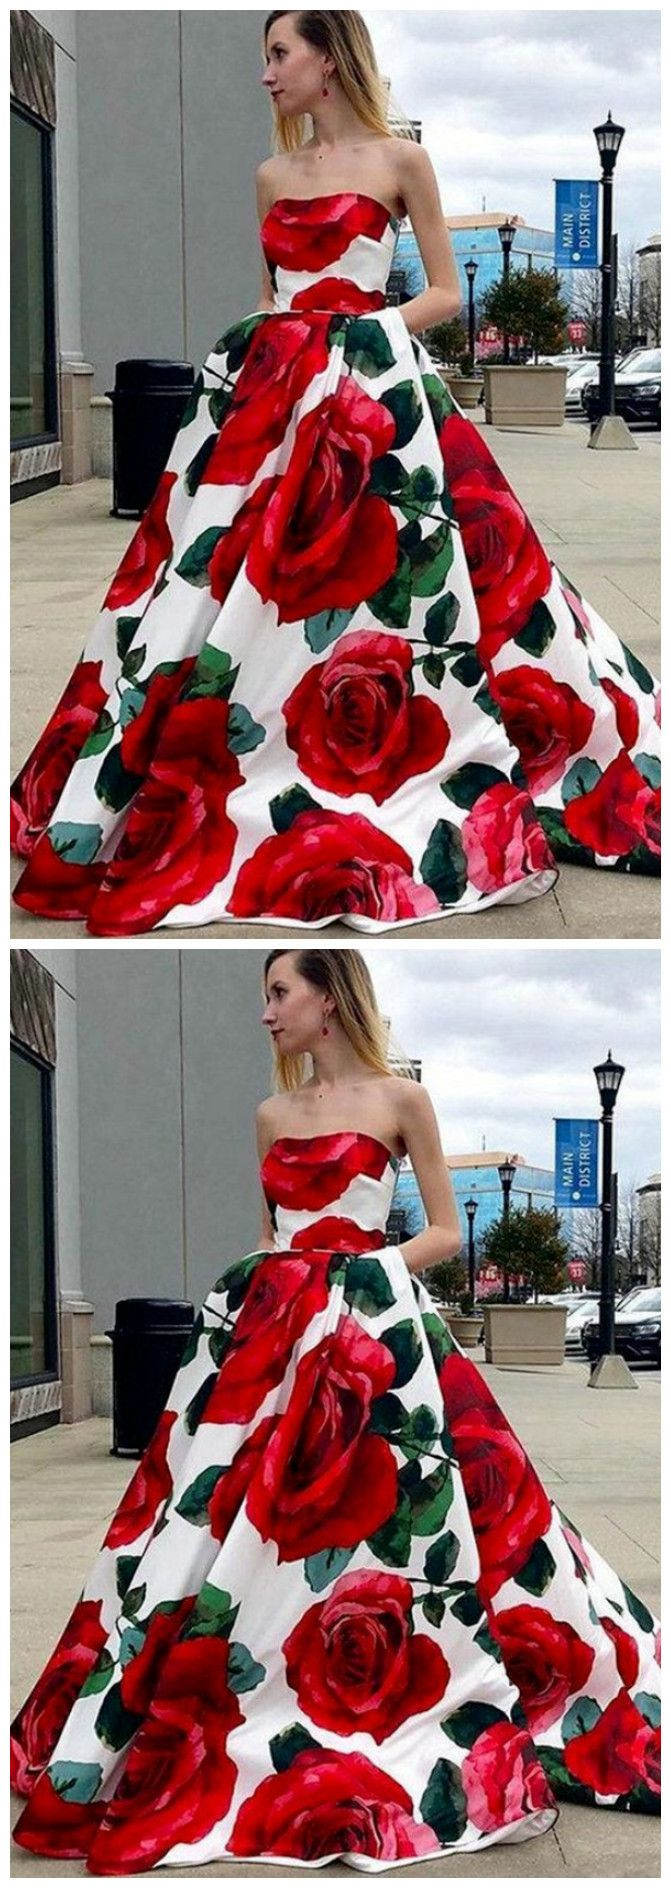 Floral Prom Dresses Long Strapless Prom Dresses Red Graduation Dress Floral Prom Dresses Red Graduation Dress Beautiful Prom Dresses [ 1888 x 671 Pixel ]